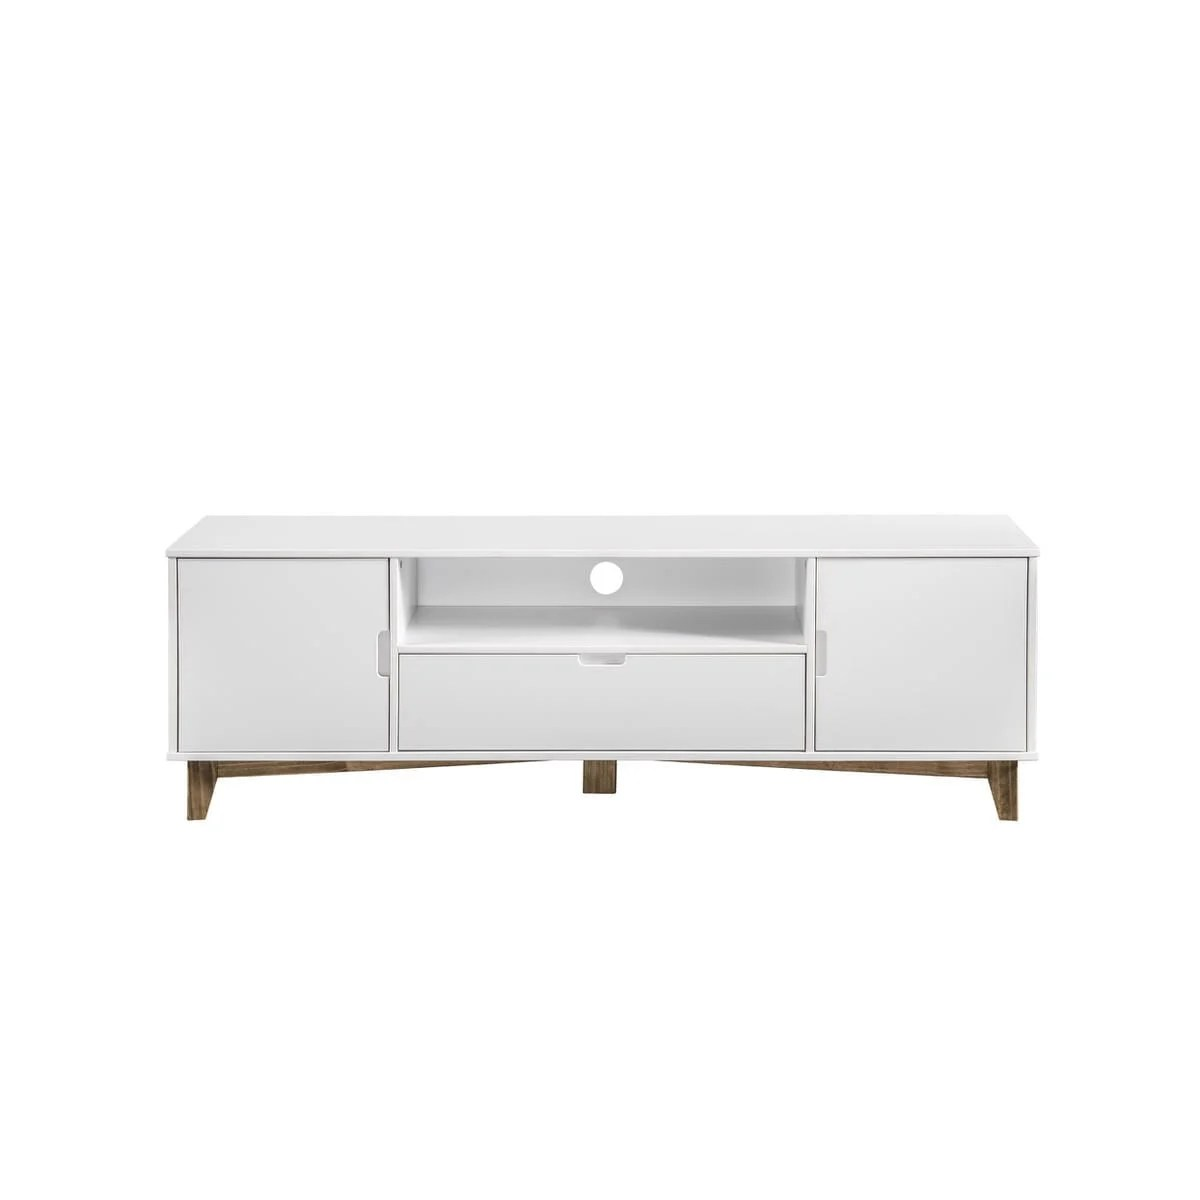 Tv Sideboard Modern Glenmore Modern 1 Drawer 62 99 Inch White Natural Wood Tv Stand By Manhattan Comfort